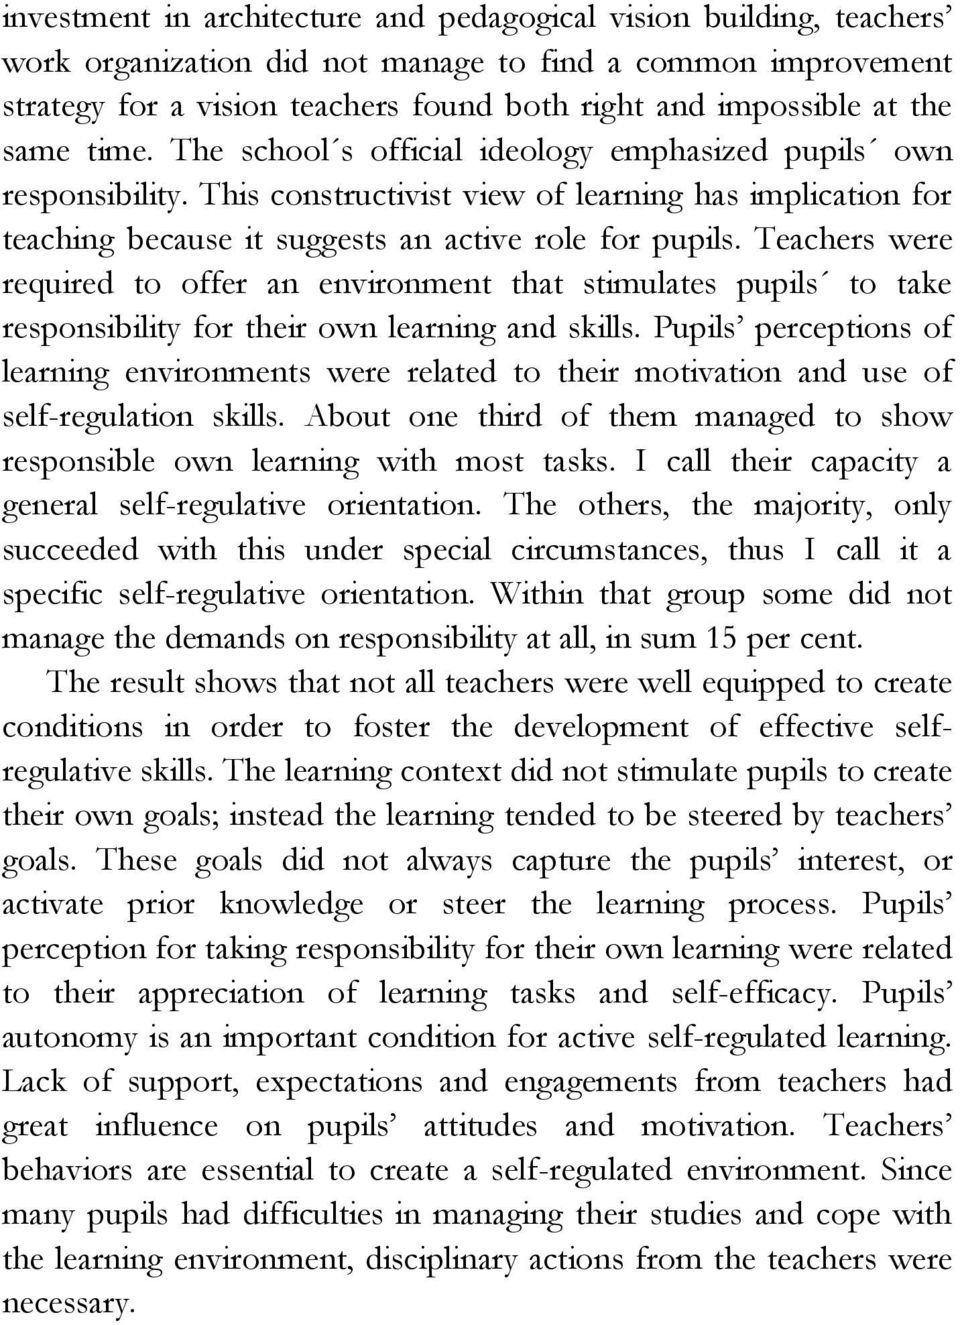 Teachers were required to offer an environment that stimulates pupils to take responsibility for their own learning and skills.